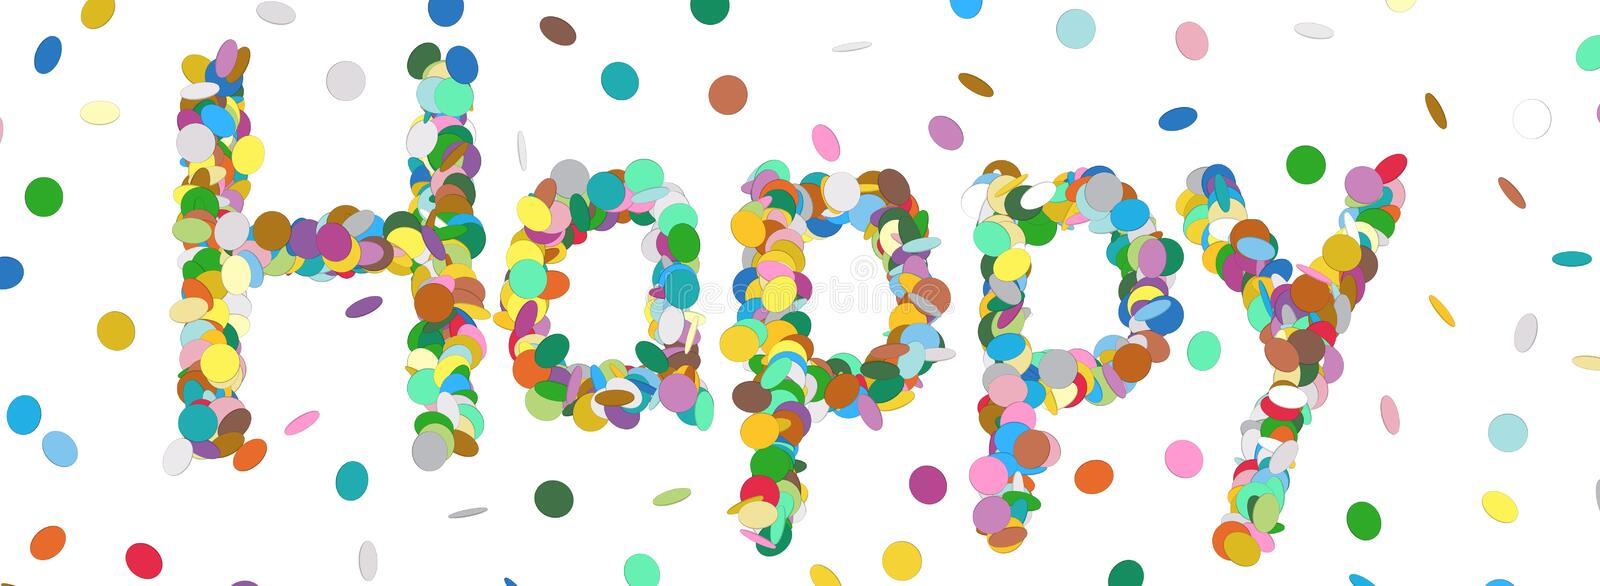 Abstract Confetti Word - Happy Letter - Colorful Panorama Vector royalty free illustration